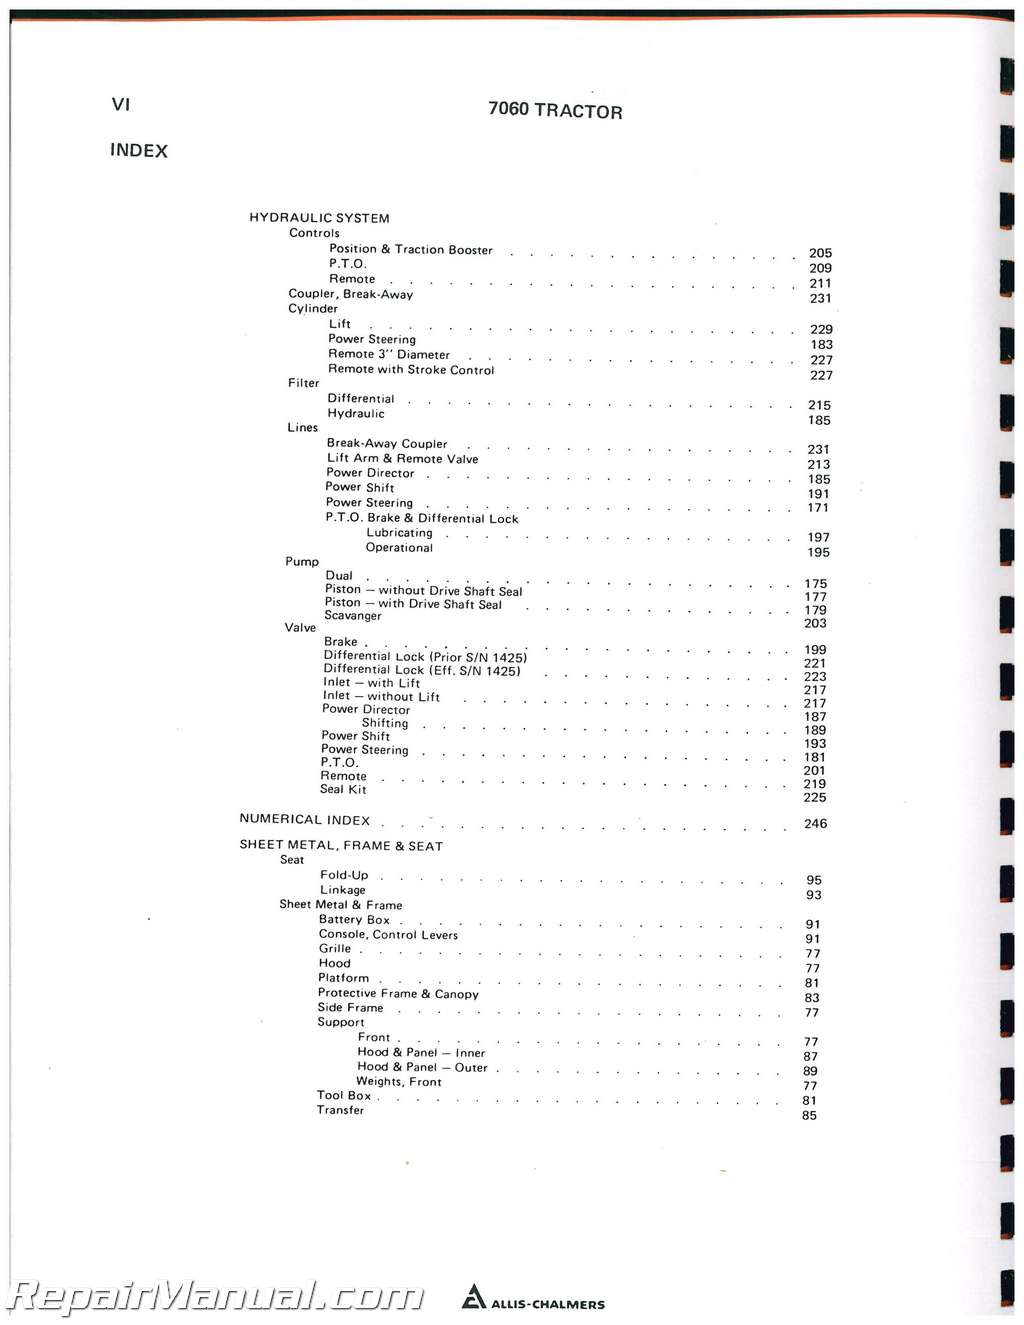 Allis Chalmers 7060 Diesel Tractor Parts Manual